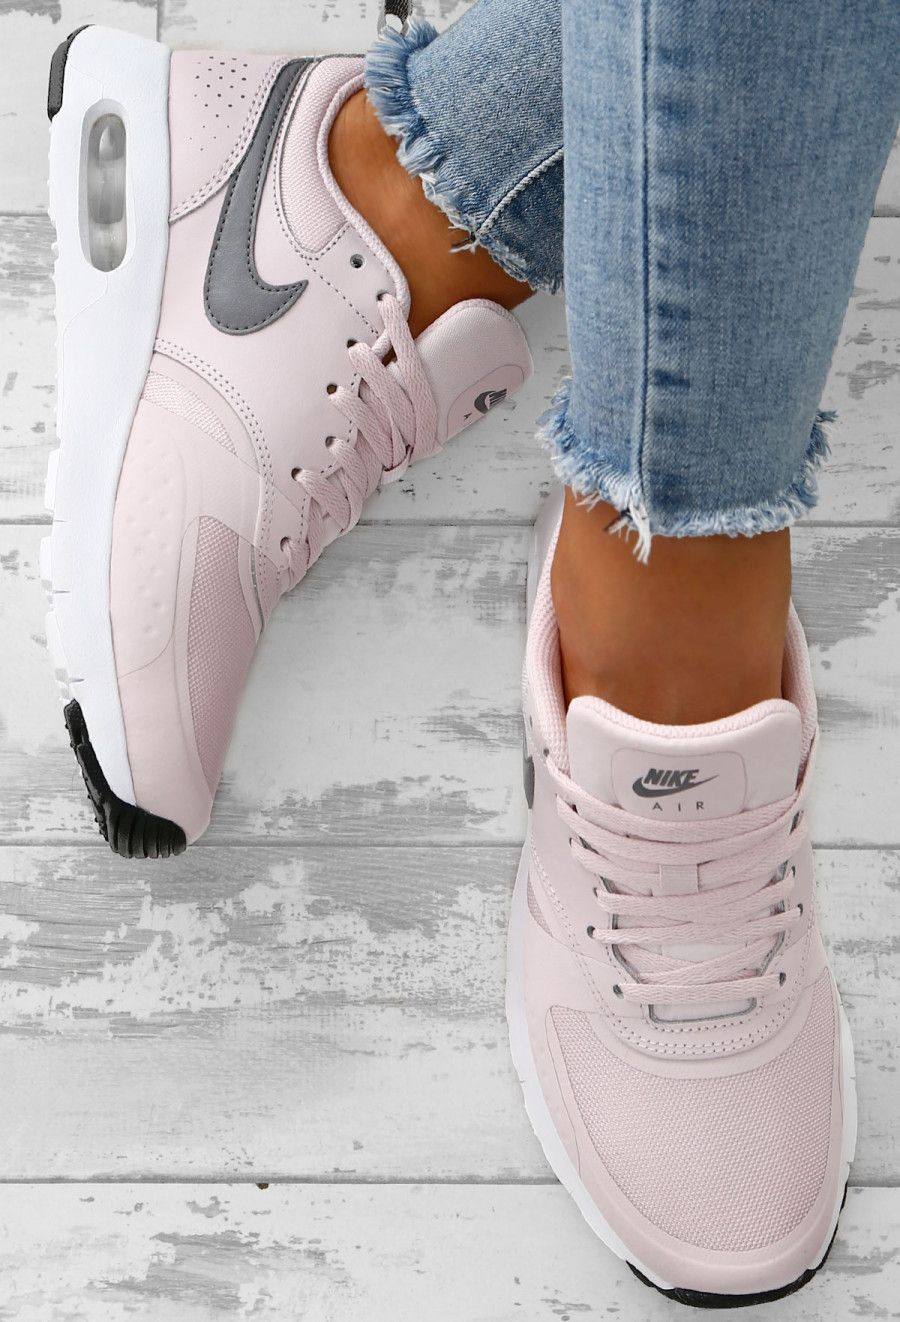 Nike Air Max Pink and Grey Vision Trainers  12e5ae49d9